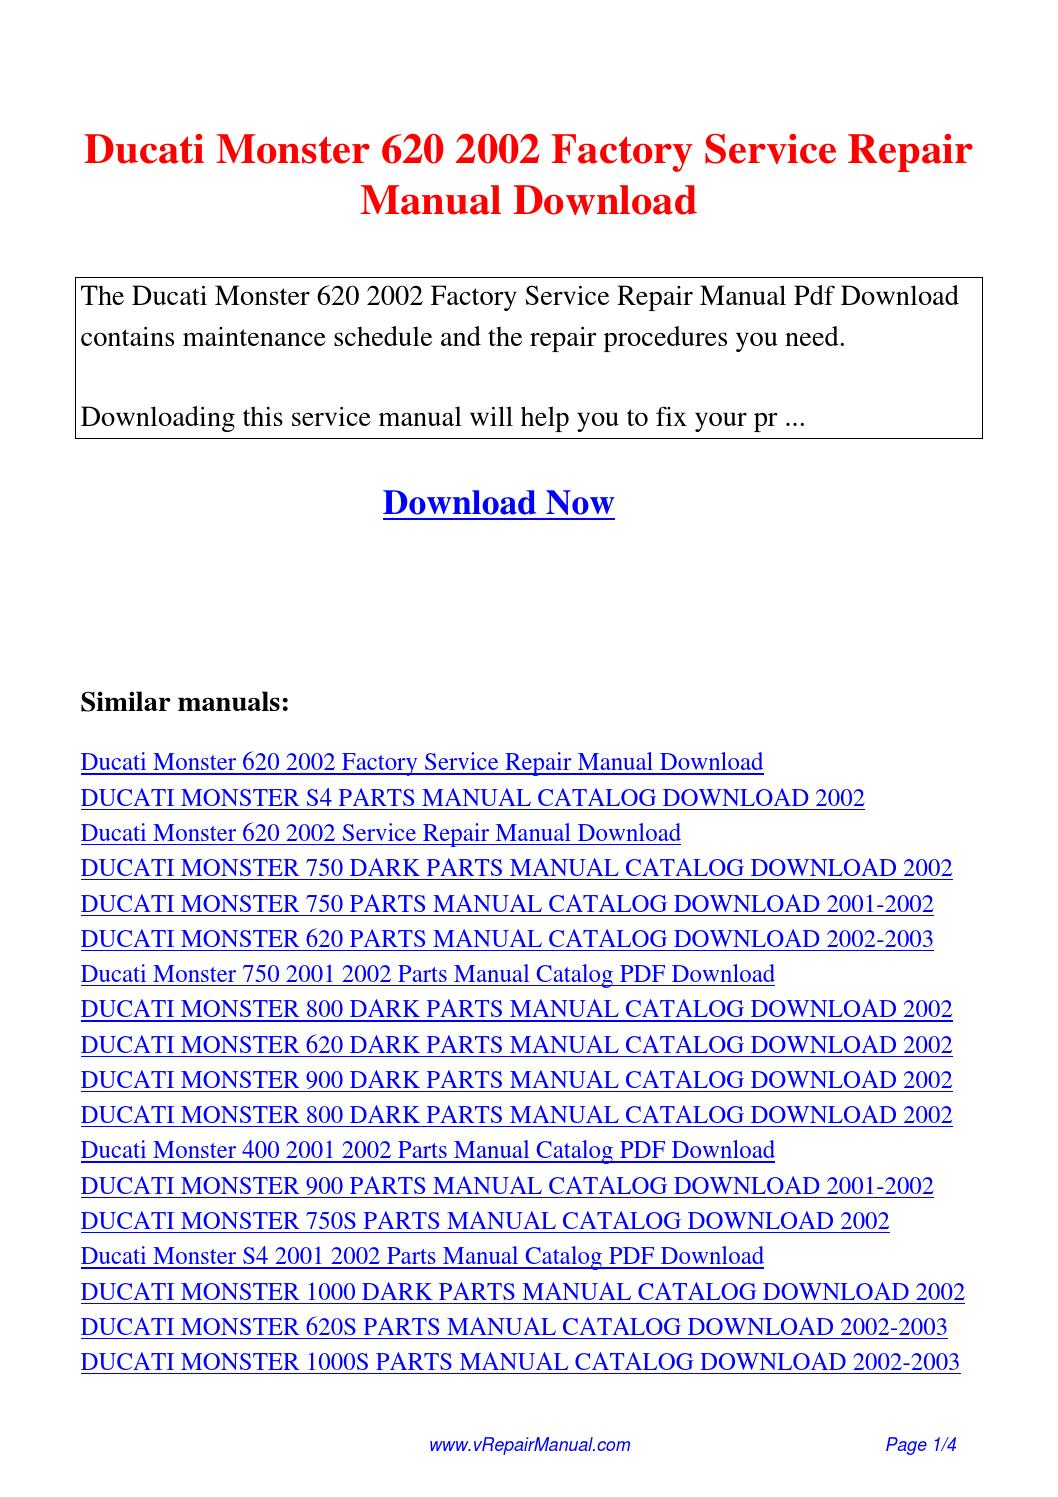 Ducati Monster 620 2002 Factory Service Repair Manual.pdf by David Zhang -  issuu